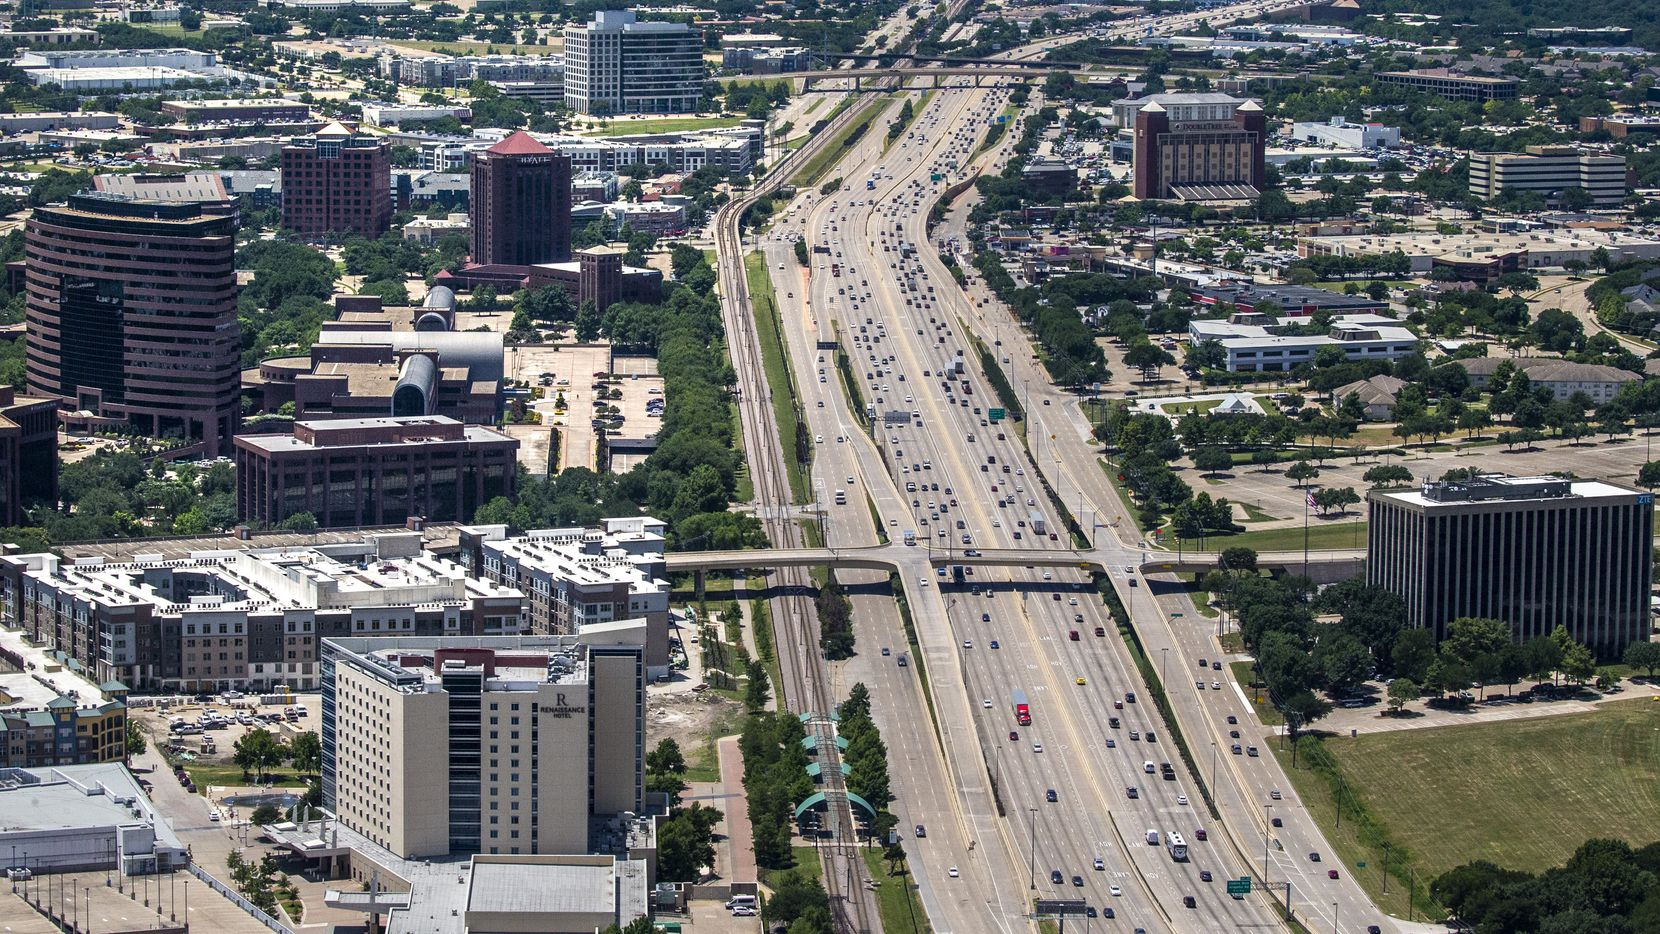 Vehicles travel on U.S. Highway 75 in Richardson, Texas, on Thursday, June 18, 2020.